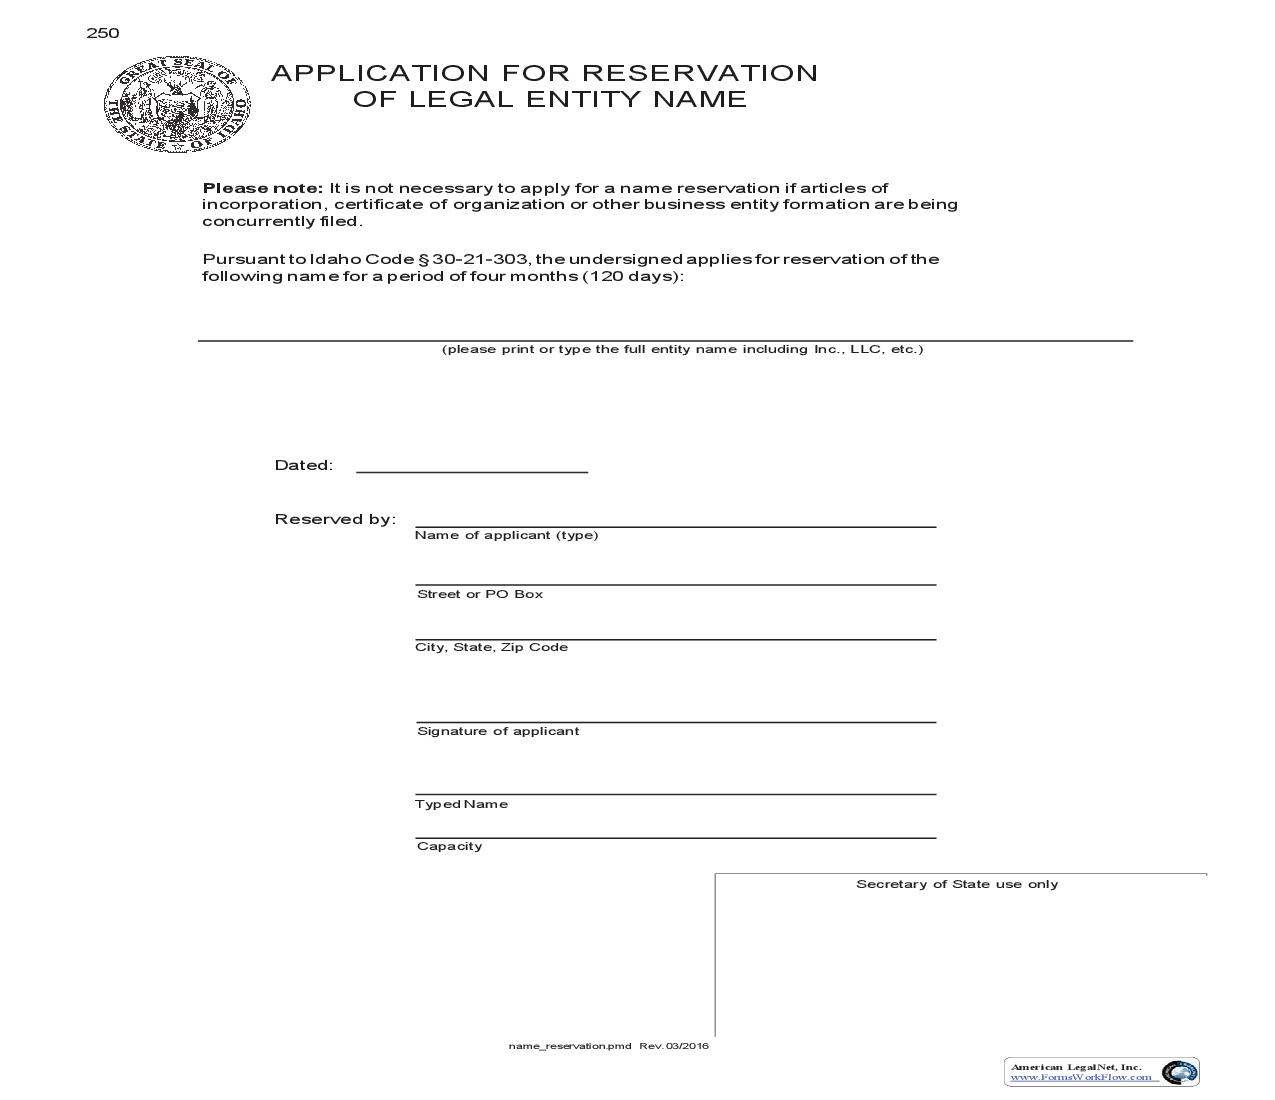 Application For Reservation Of Legal Entity Name {250} | Pdf Fpdf Doc Docx | Idaho